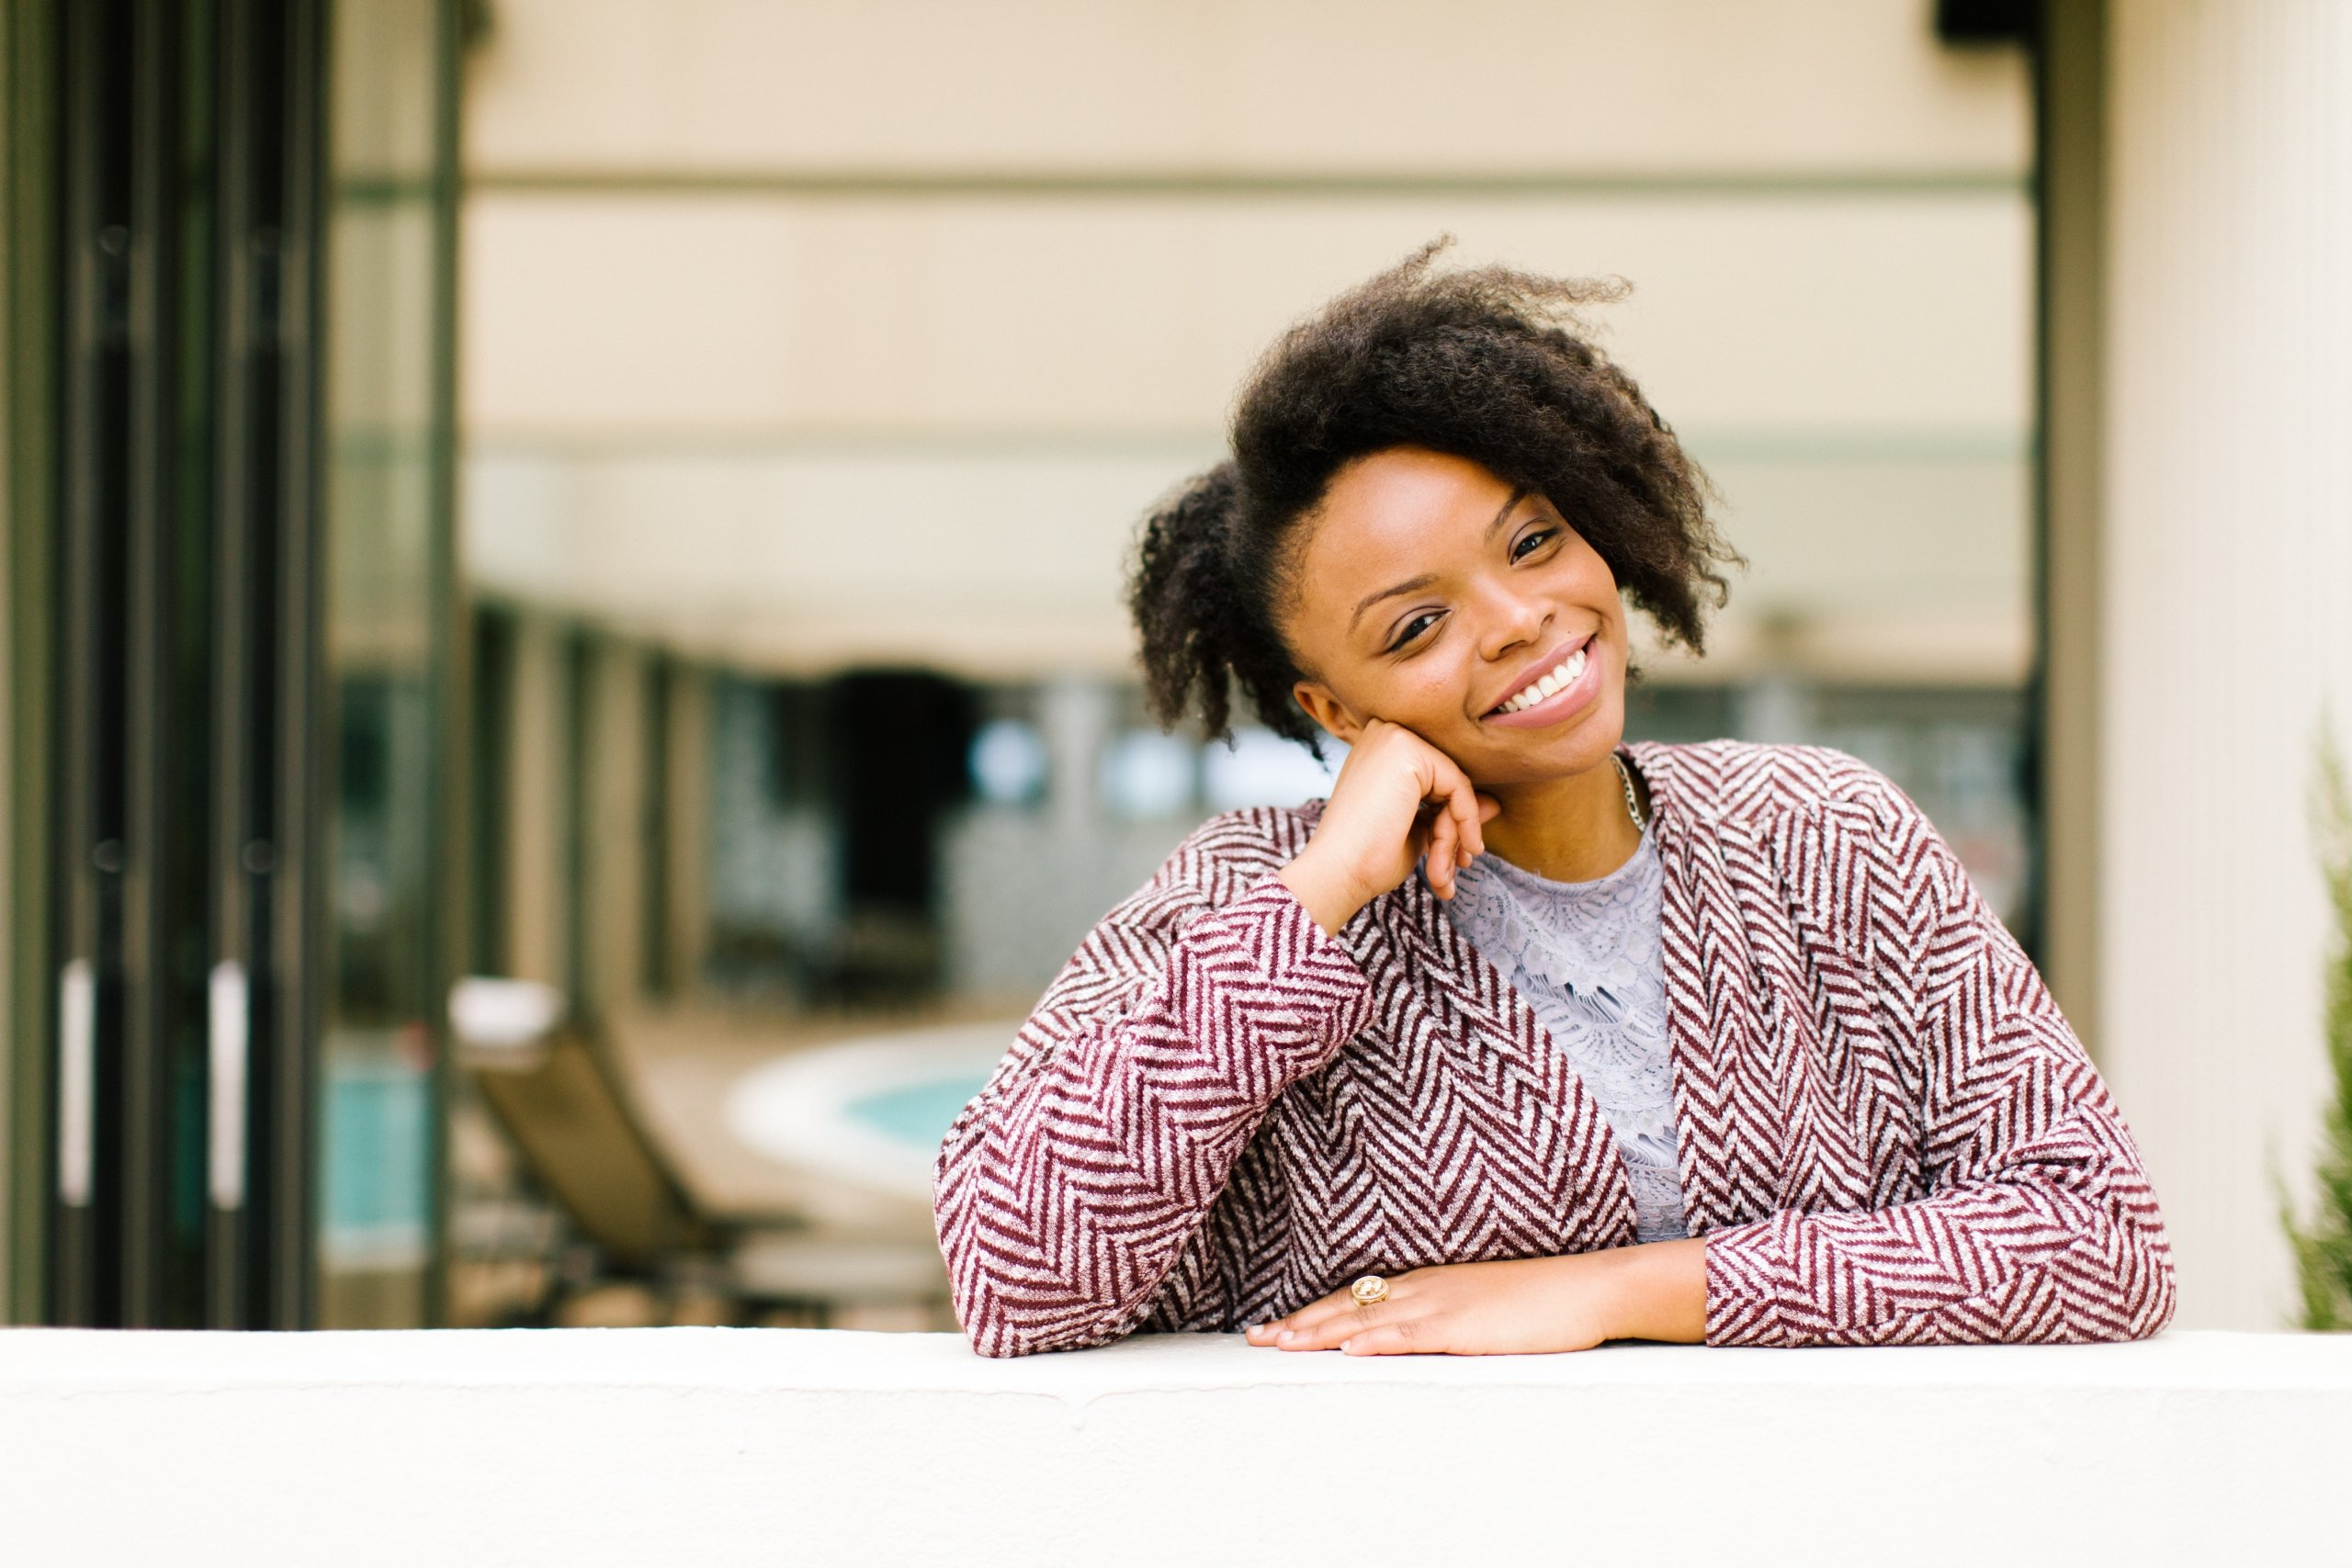 Danielle Desir teaches podcasters how to DIY Podcast Tour to grow their audience and make more money.